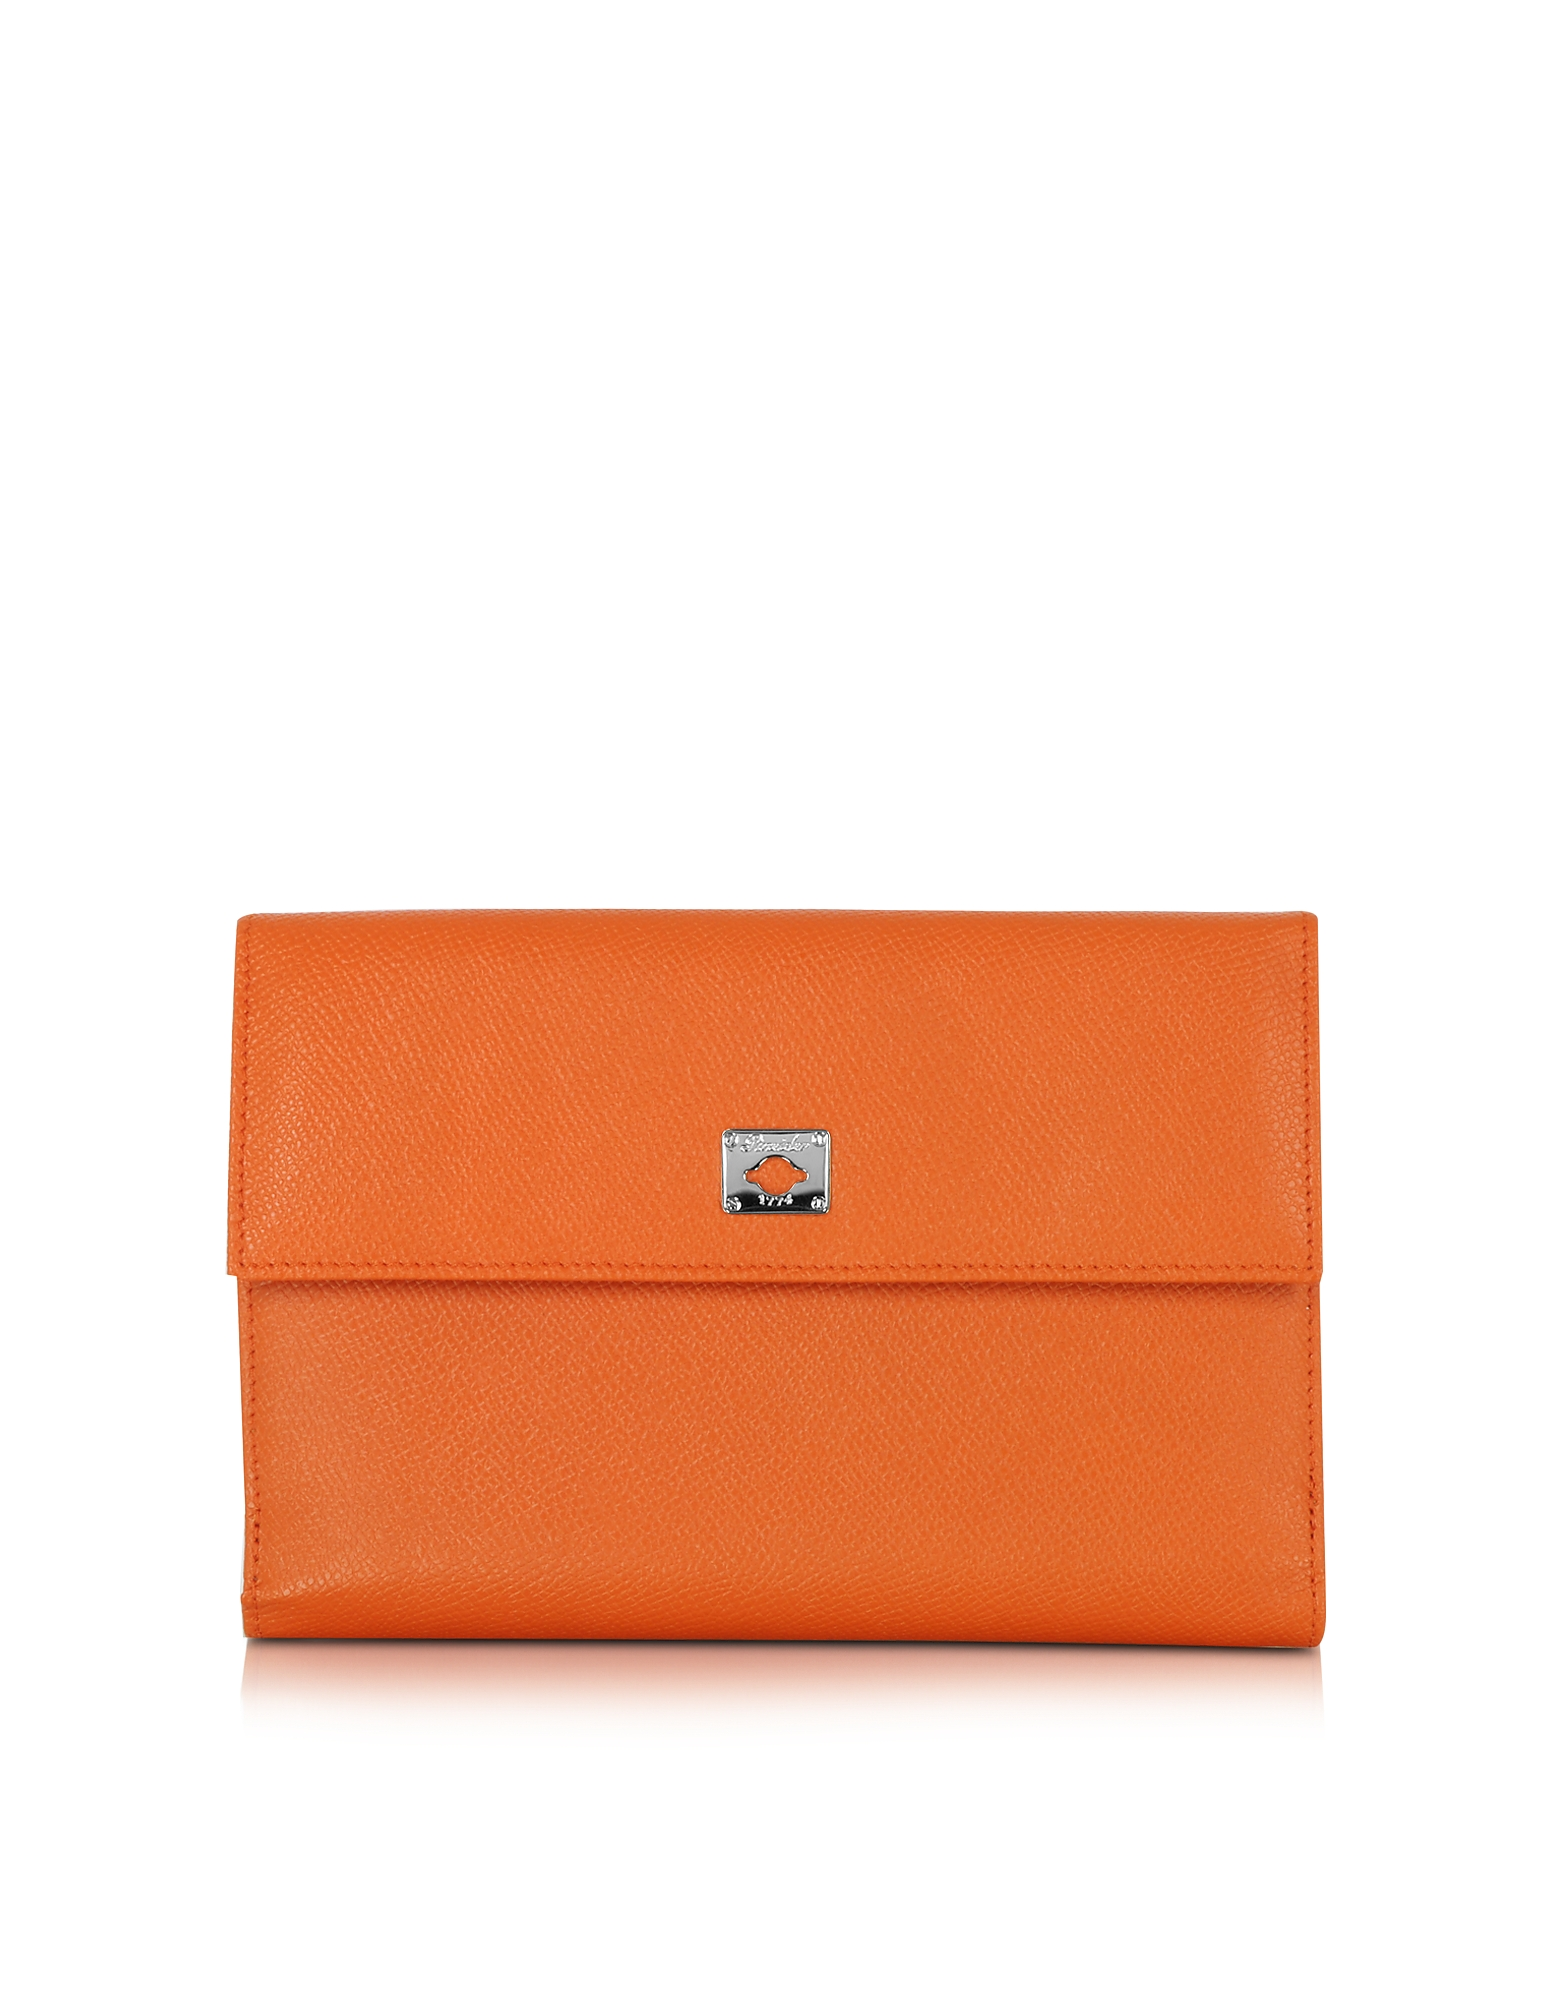 Pineider Handbags, City Chic Orange Leather French Purse Wallet